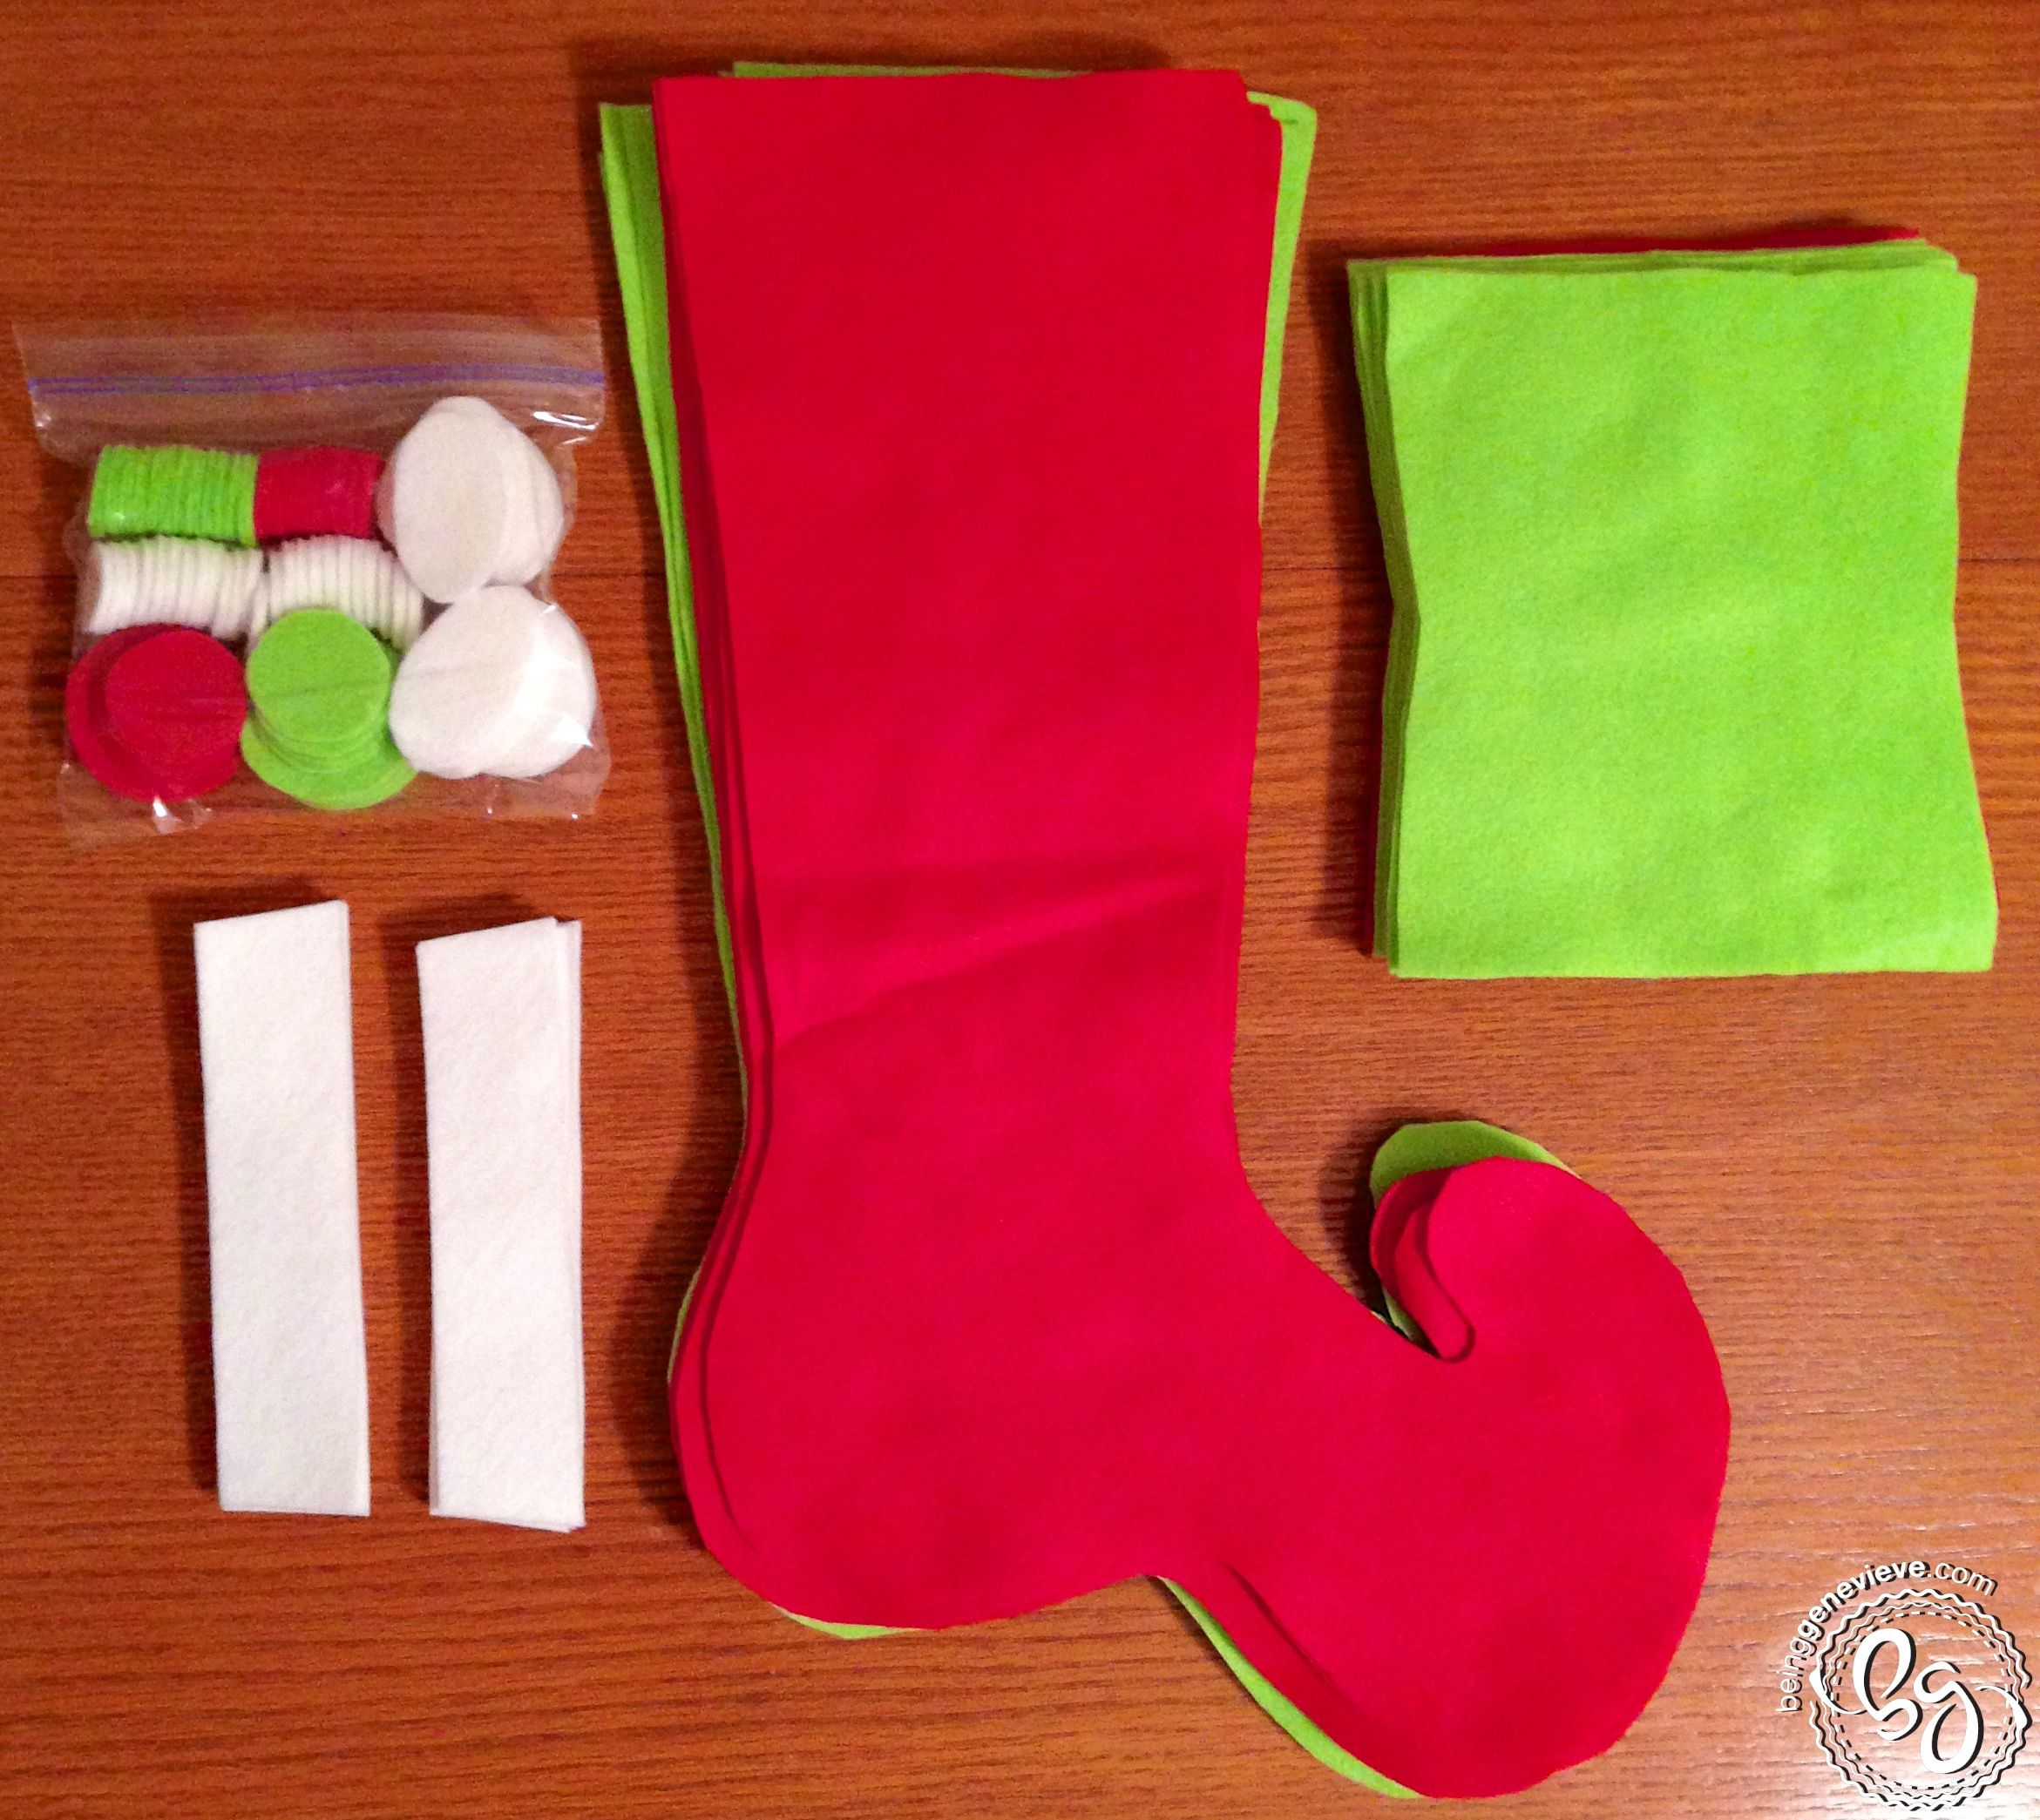 Whoville Christmas Stockings Grinch Christmas Decorations Whoville Christmas Christmas Stockings